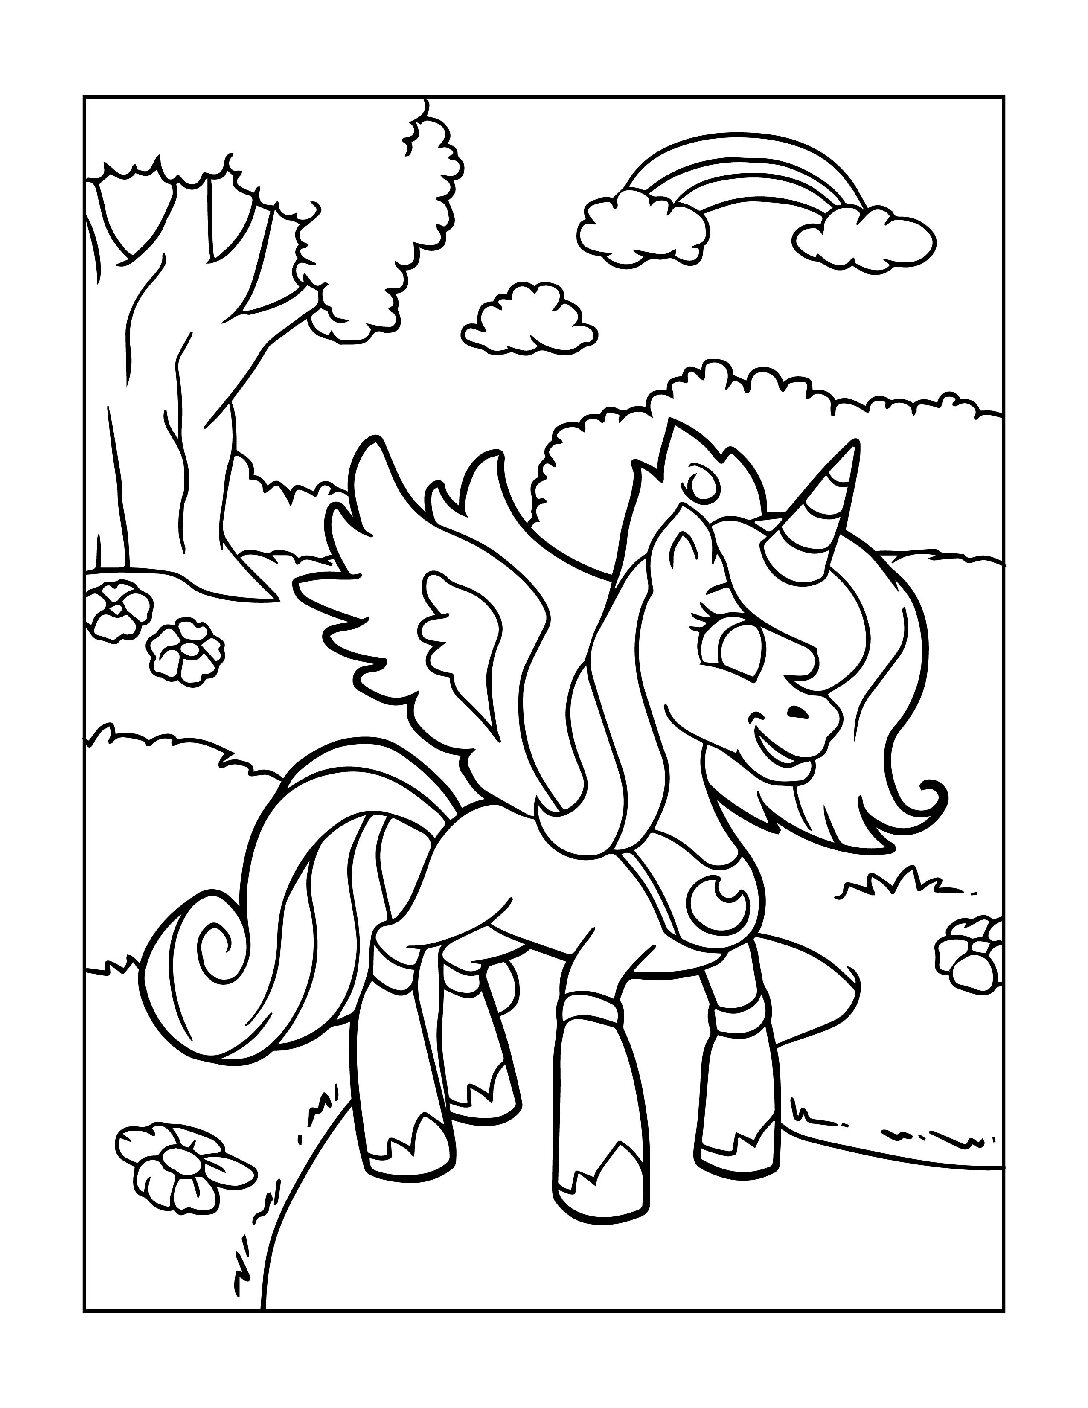 Coloring-Pages-Unicorns-11-pdf Free Printable Unicorn Colouring Pages